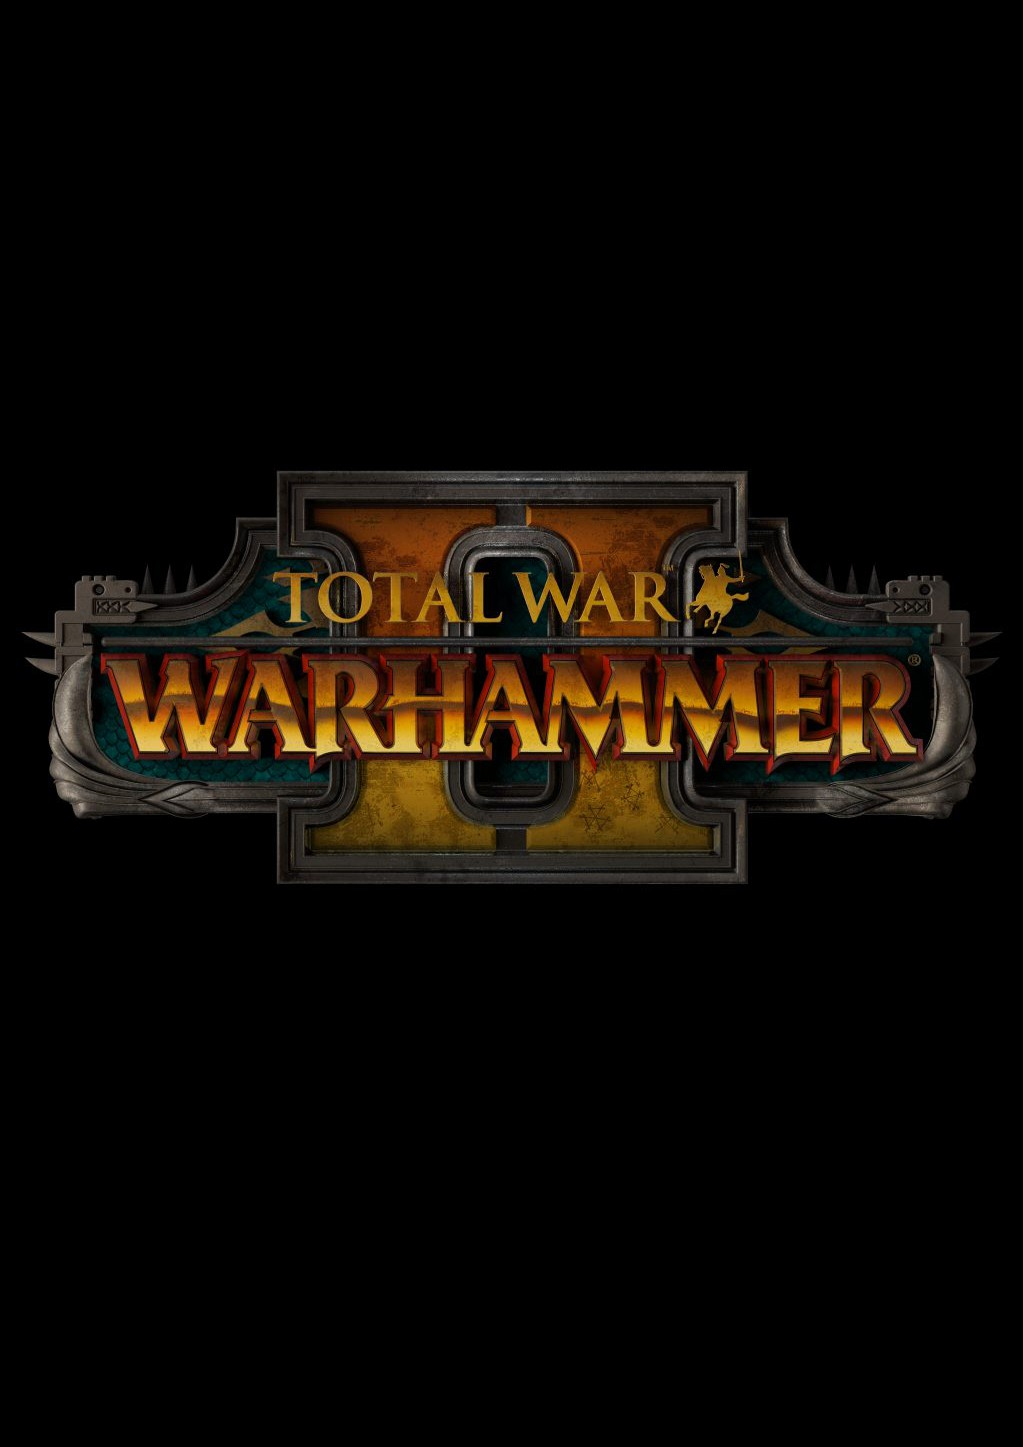 Total War WARHAMMER 2 Steam Key Europe